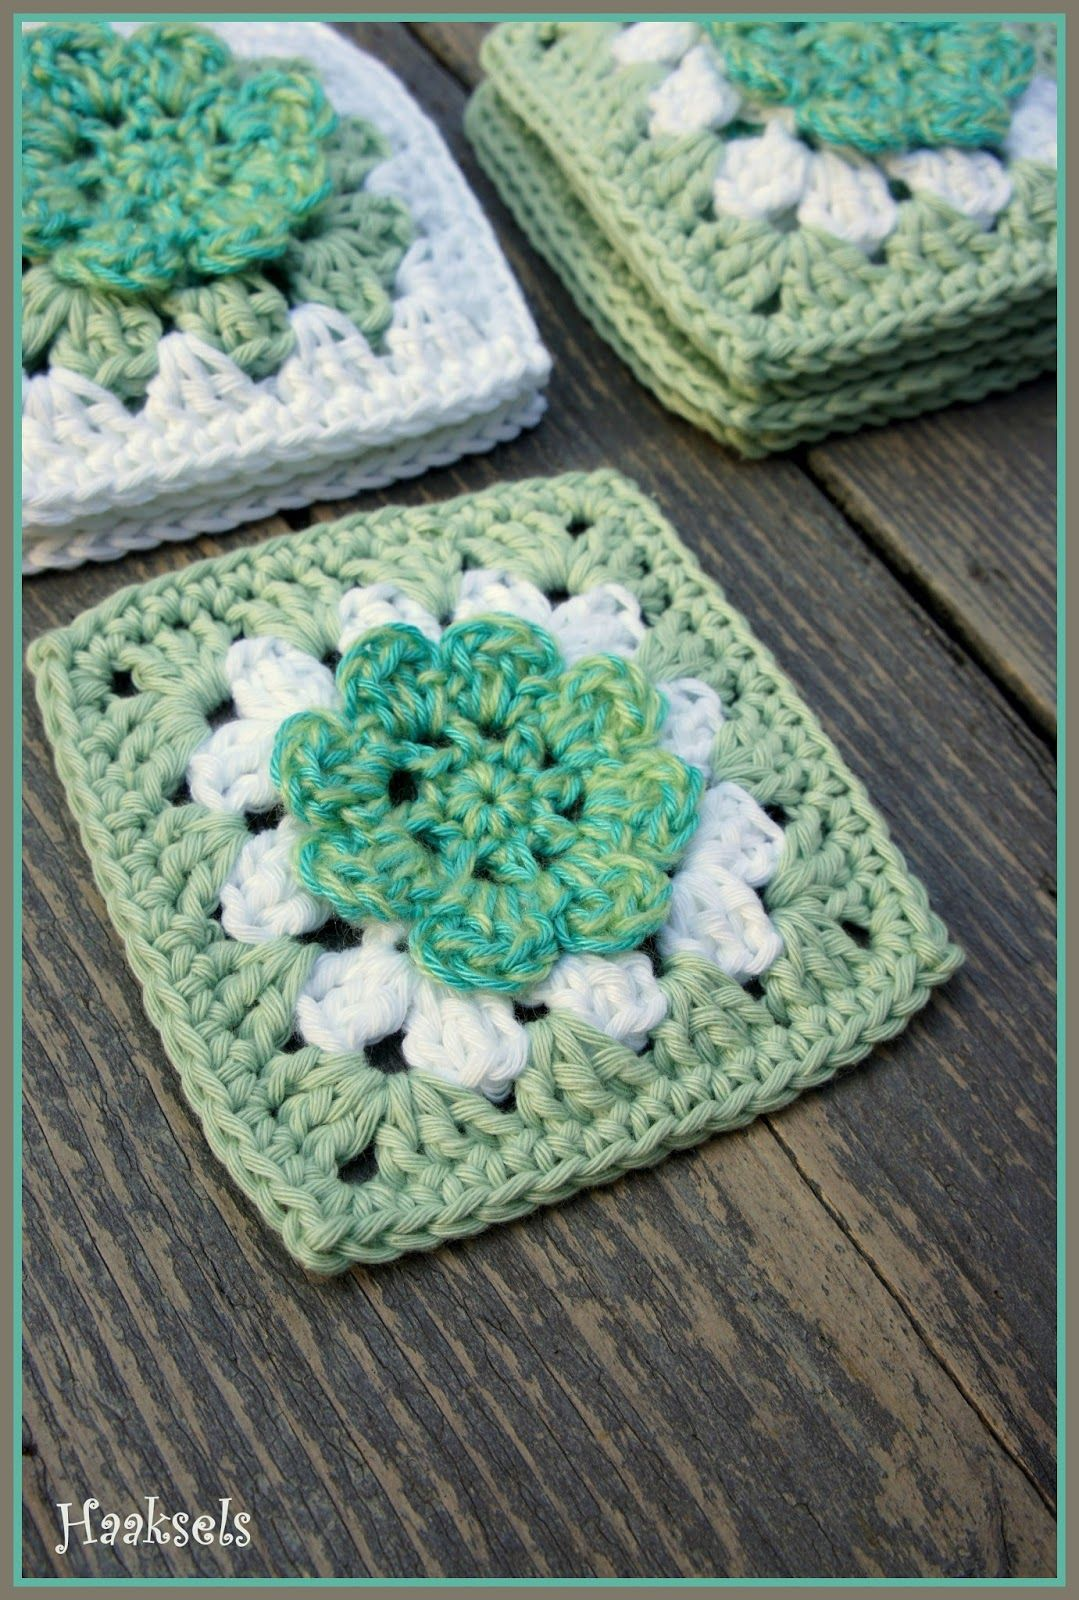 Dress up your table with these stylish crochet placemats haaksels flower grannie square pattern cq bankloansurffo Gallery